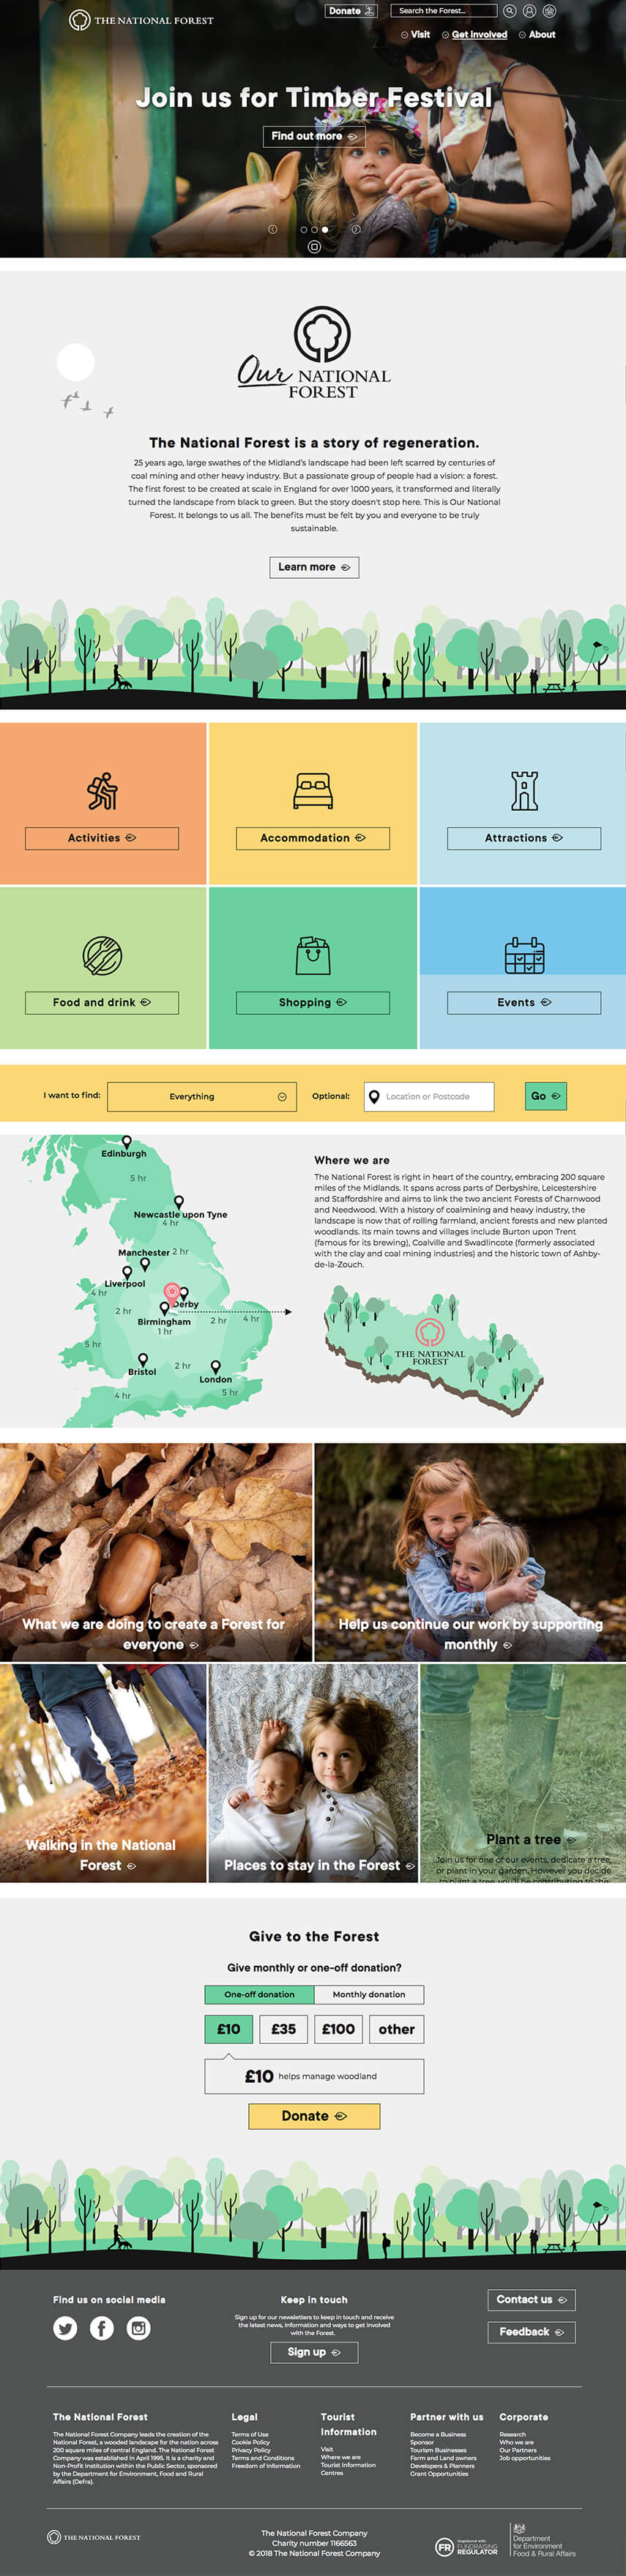 National-forest project image